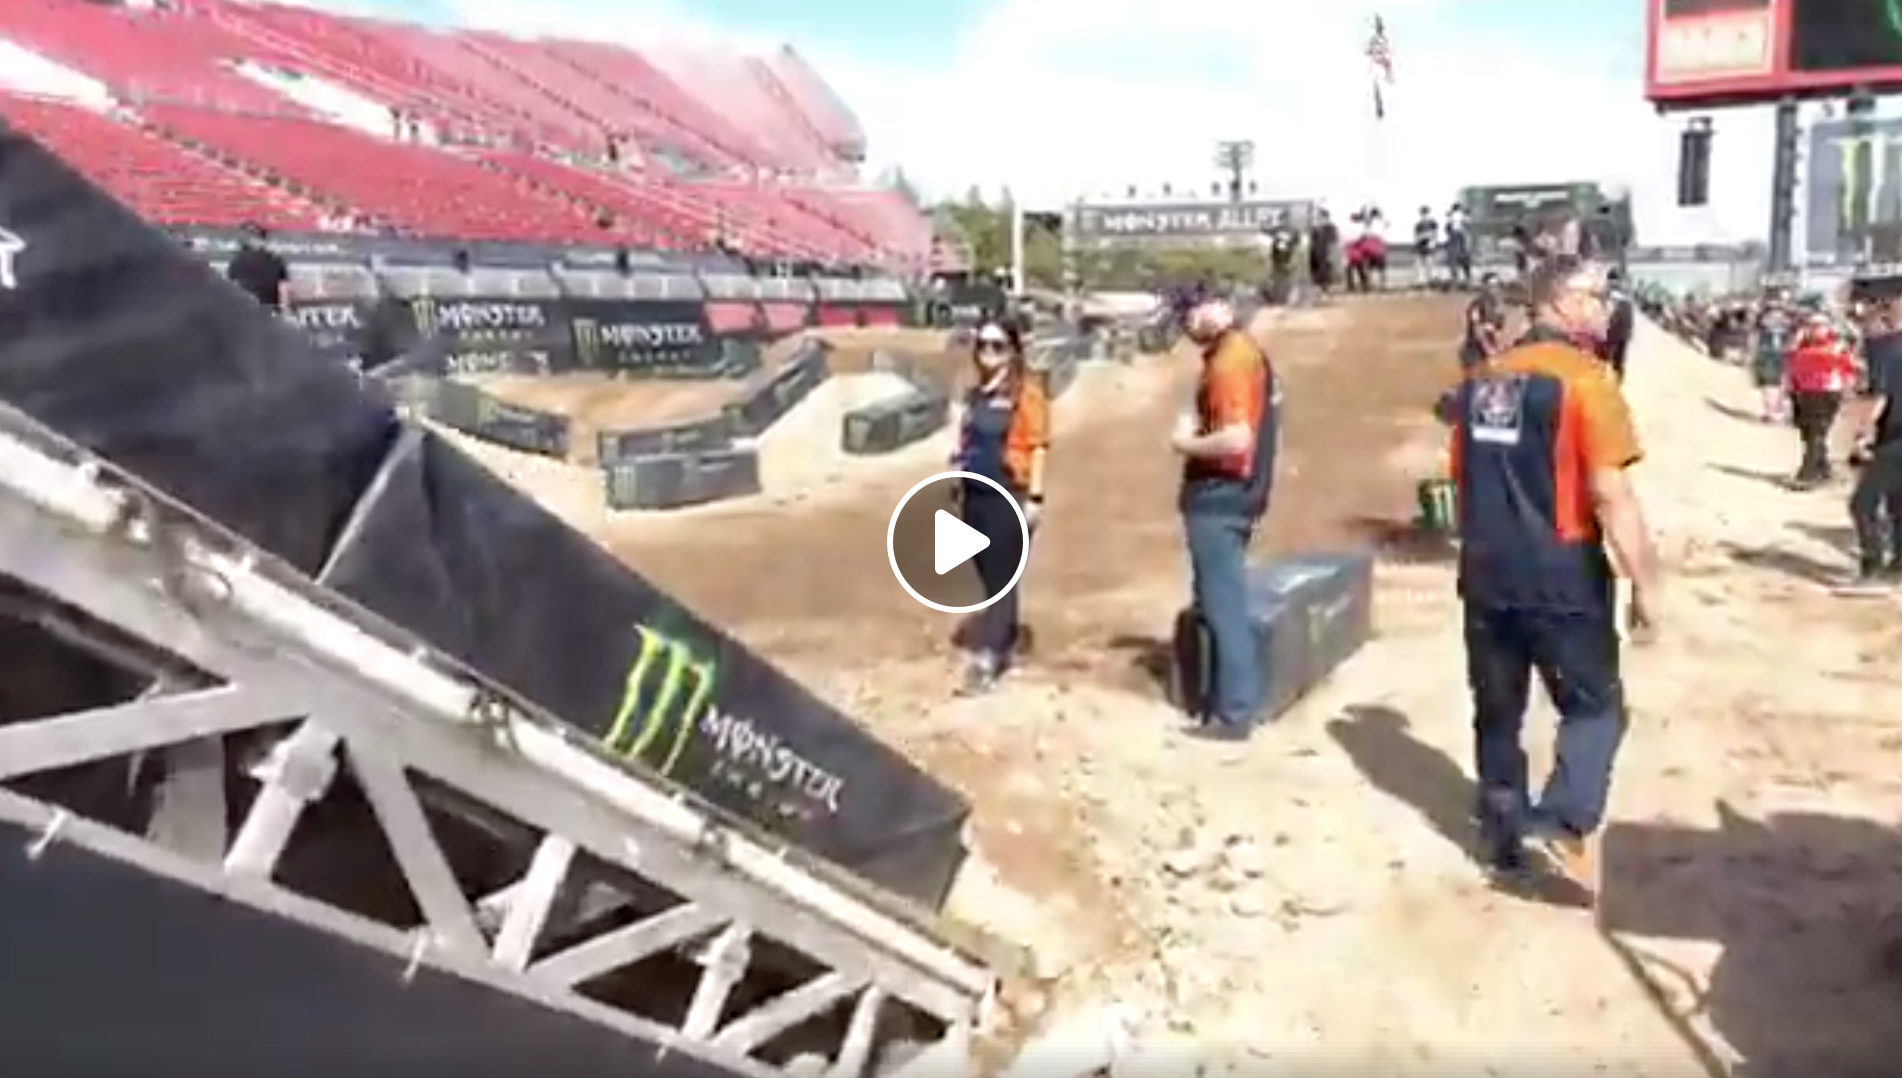 Track Walk – 2018 Monster Energy Cup